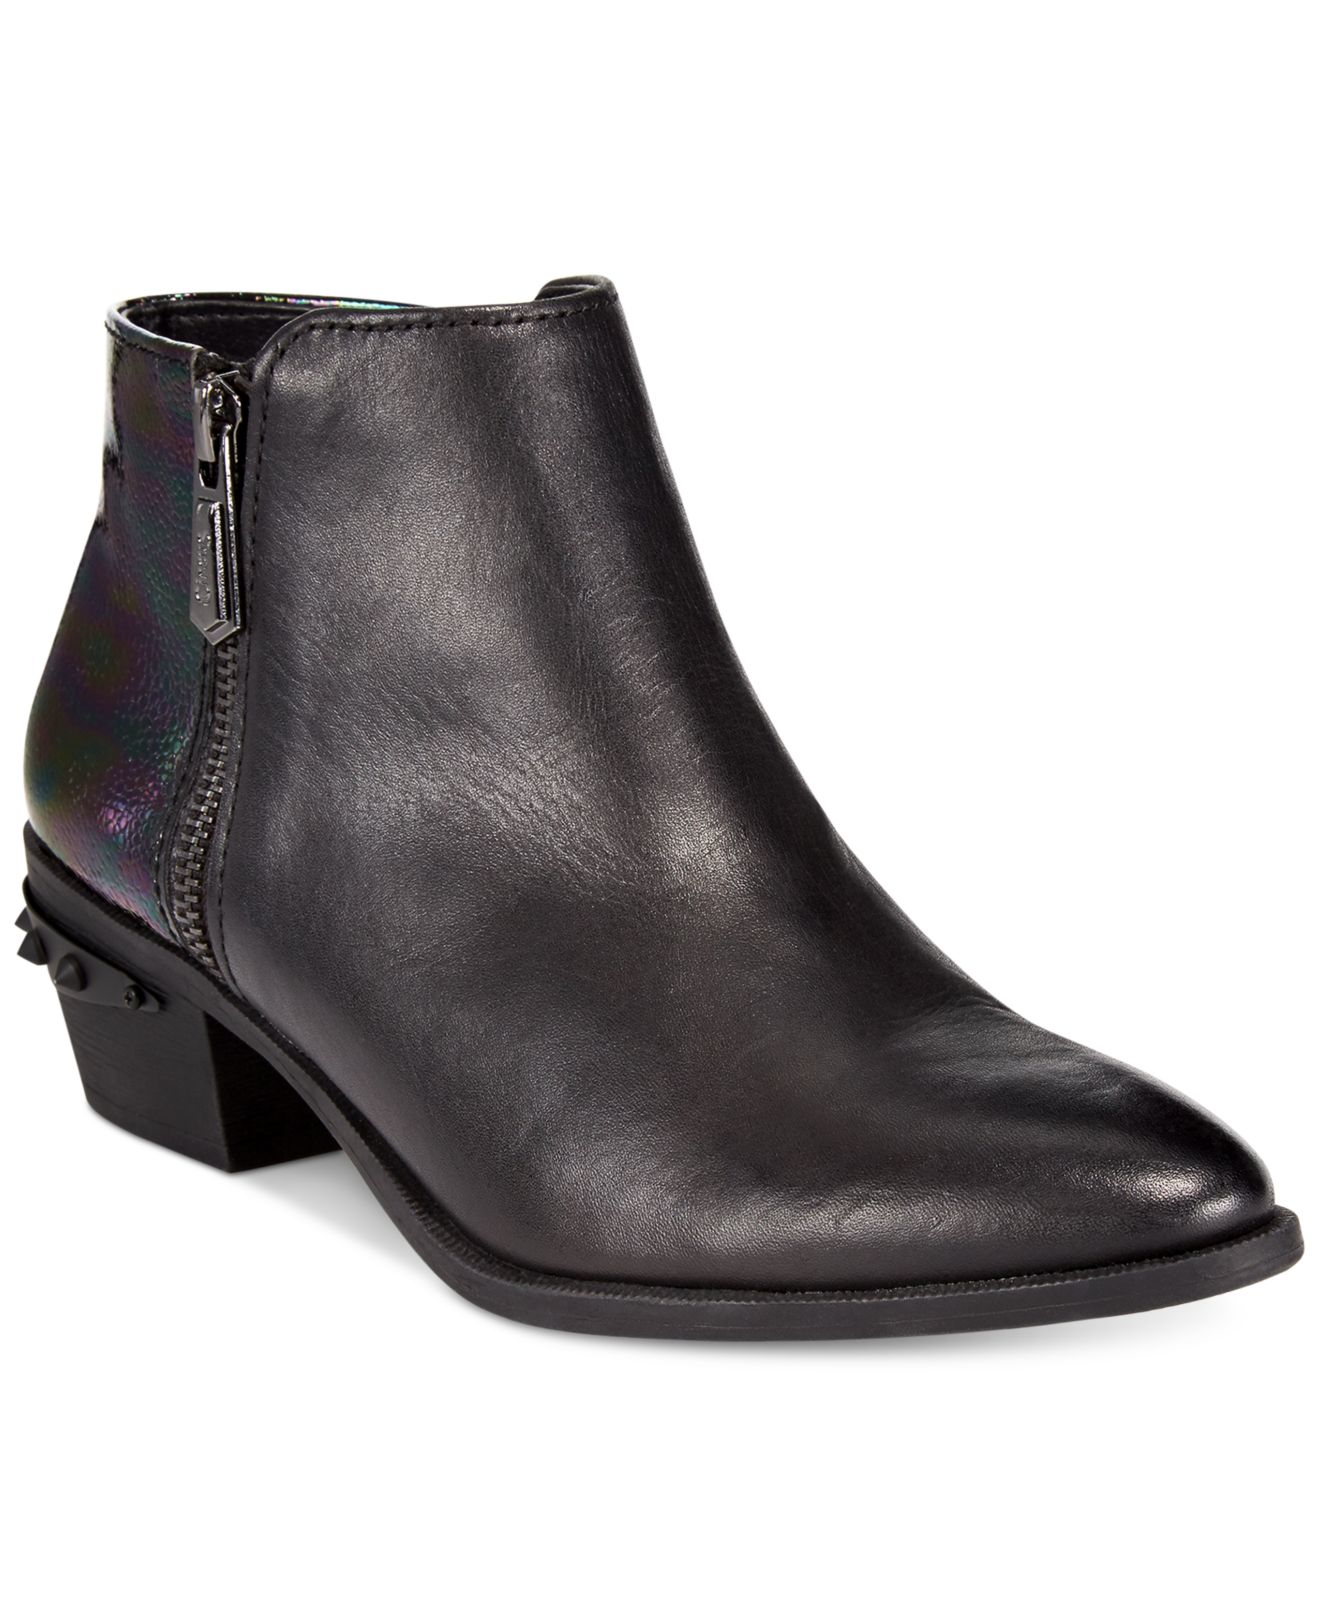 fe578a938373 Lyst - Circus by Sam Edelman Holt Booties in Black